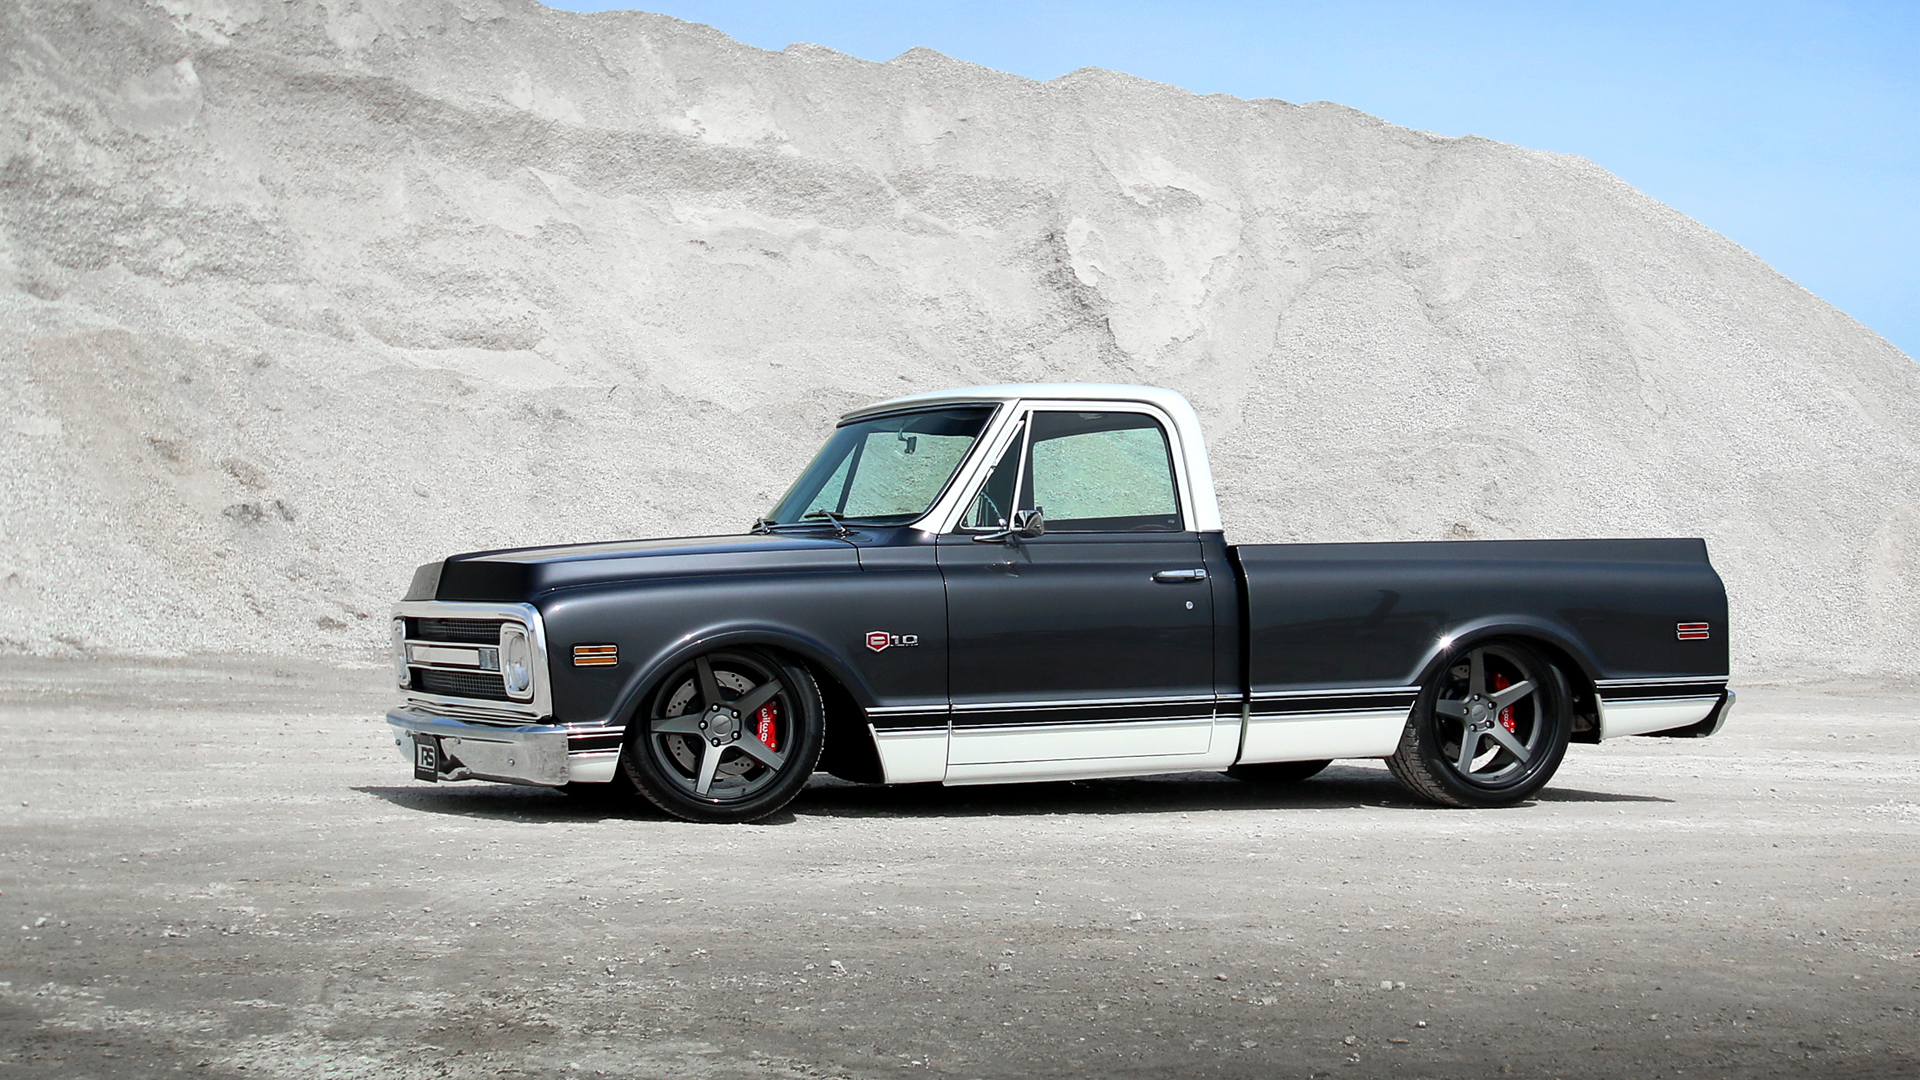 Second-generation C-10 Truck Values Are On The Rise